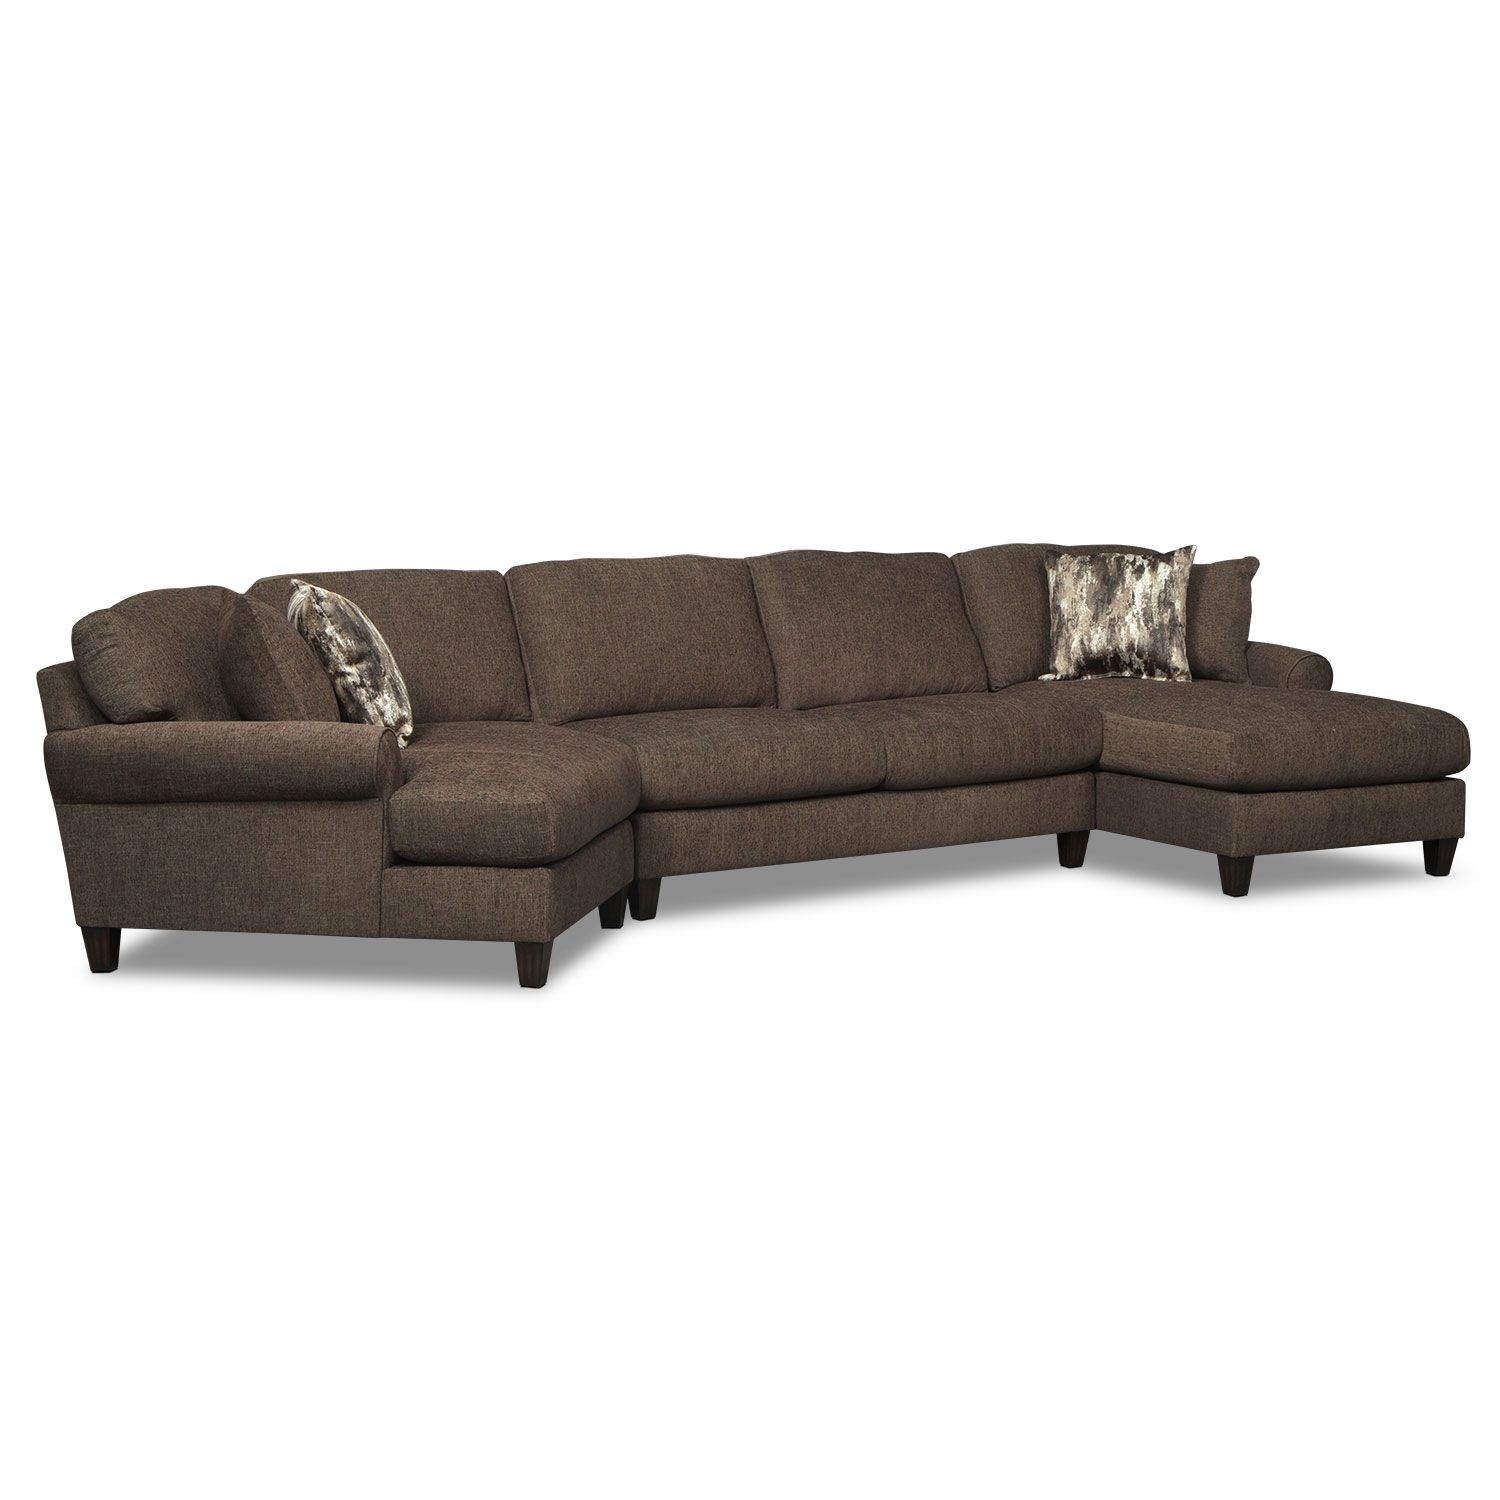 Living Room Furniture Karma Smoke 3 Pc Sectional with Right